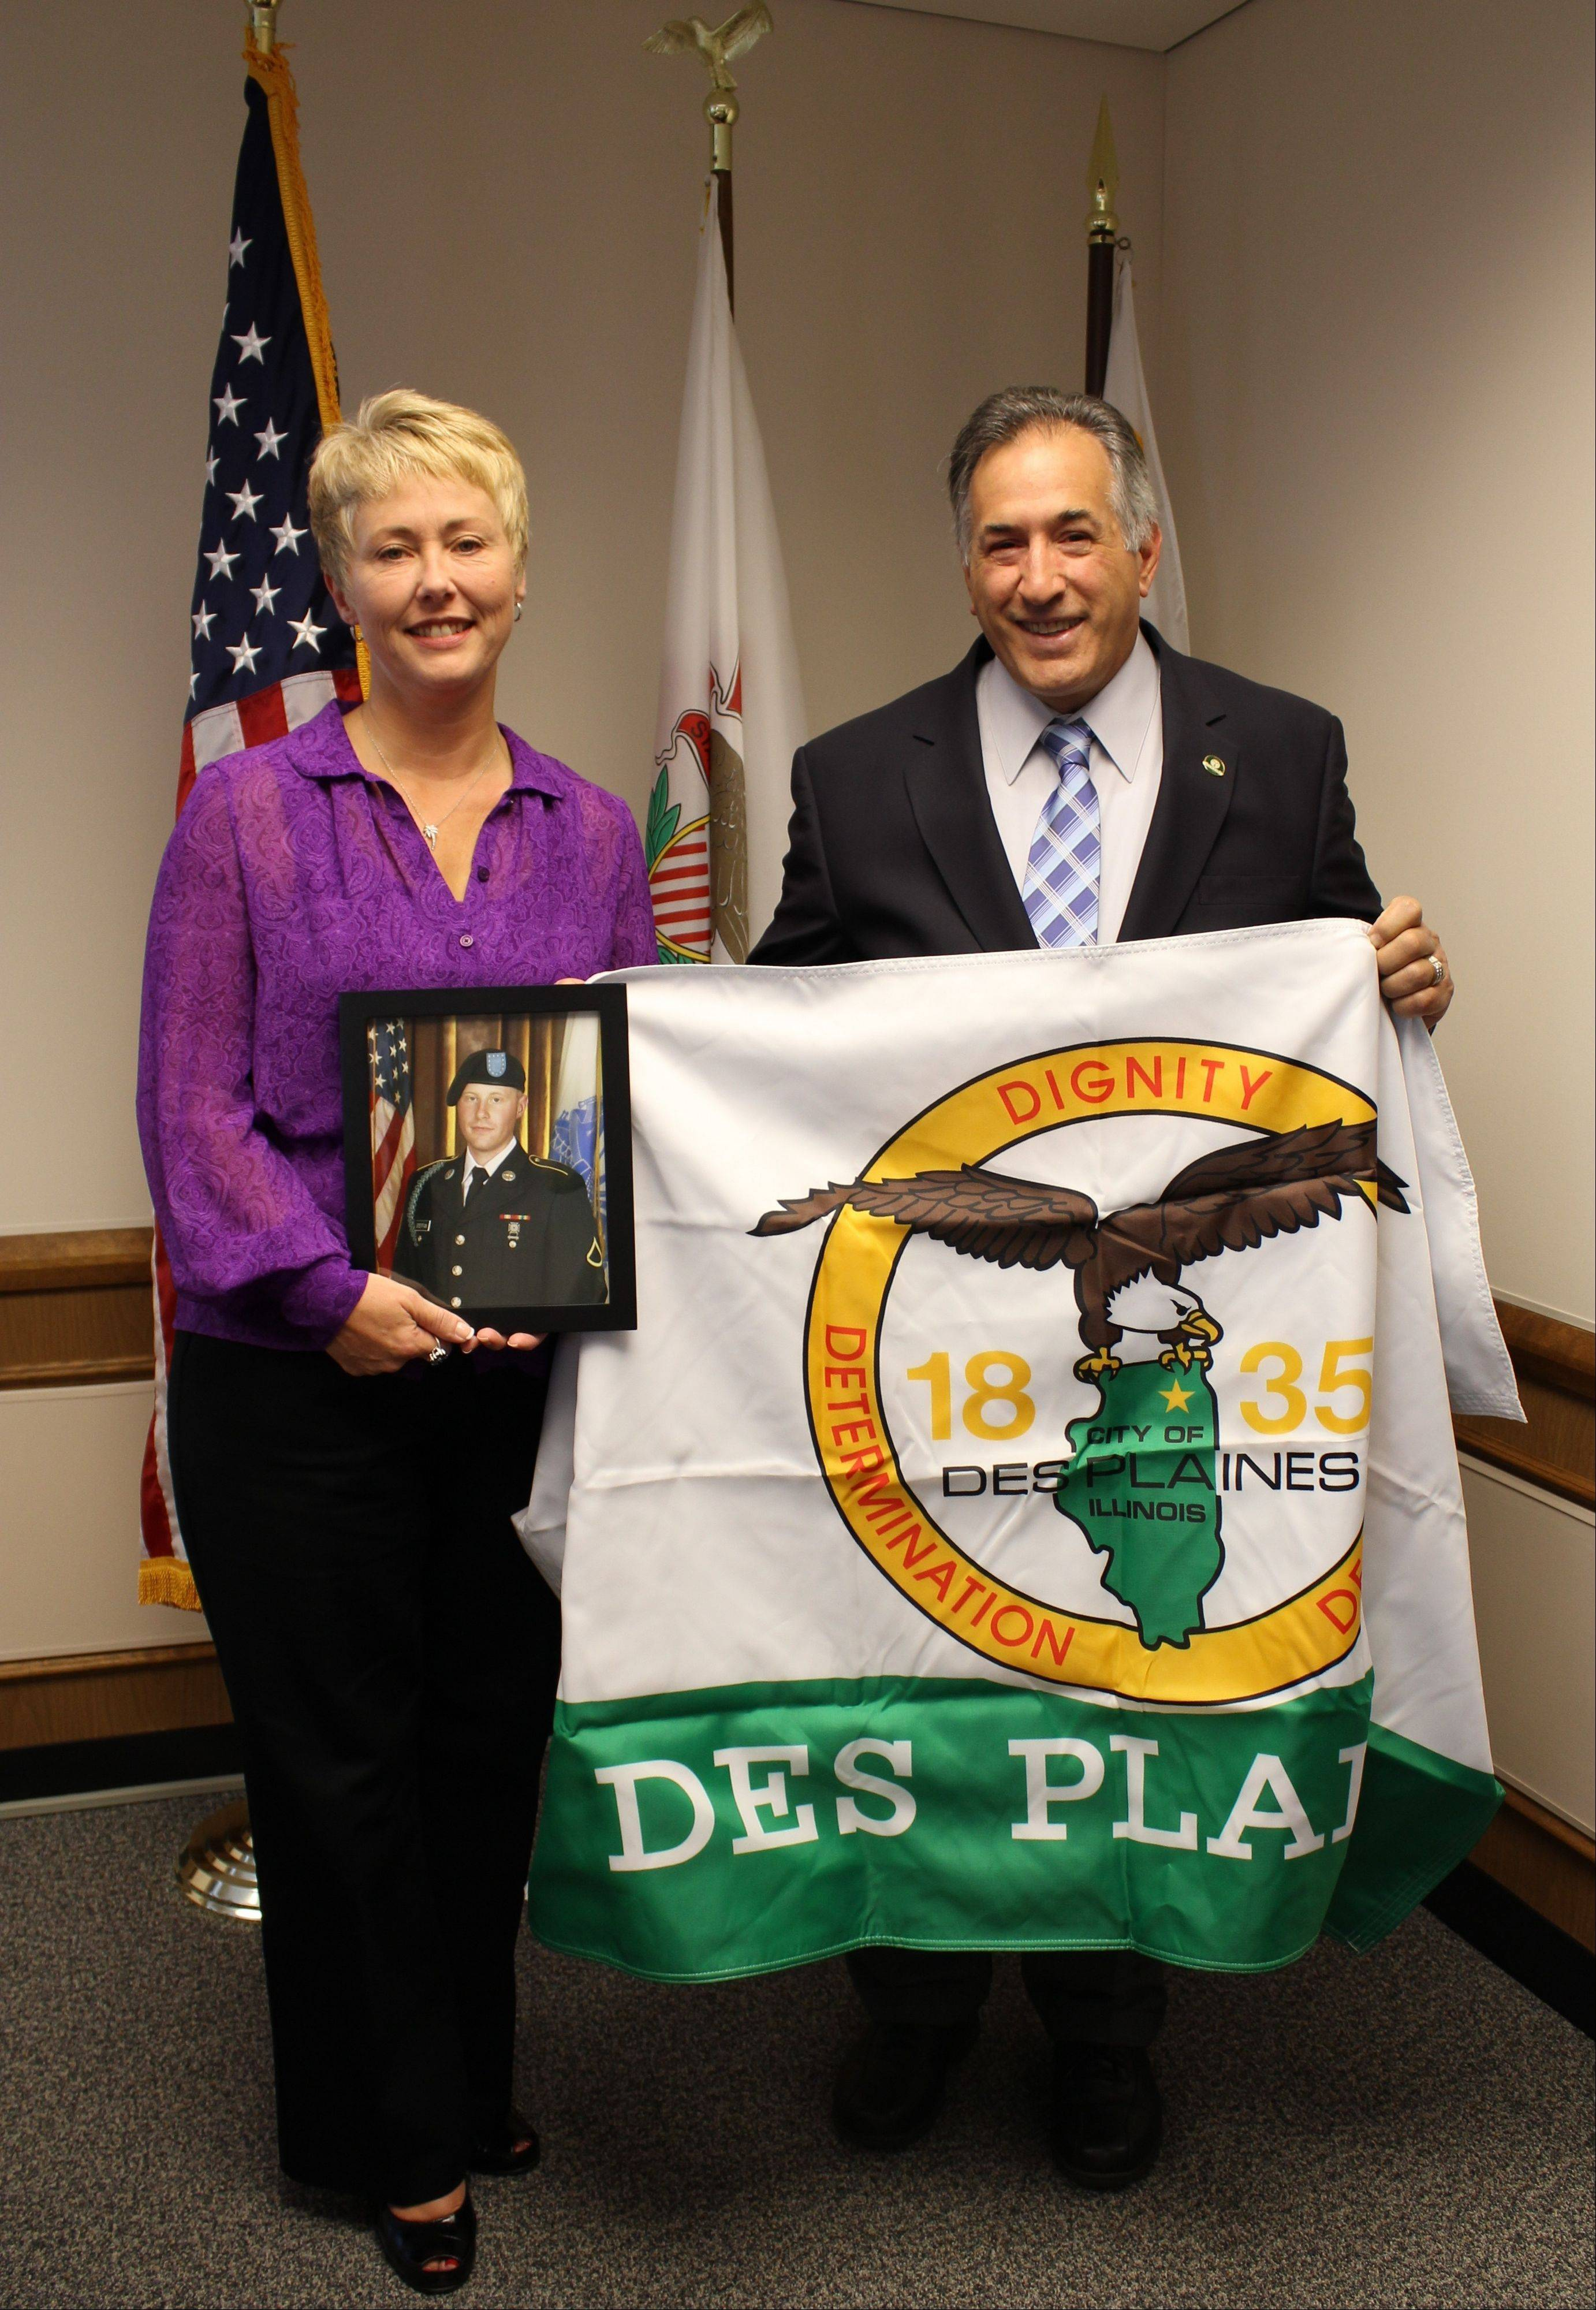 Resident Paula Steffan accepts a Des Plaines flag from Mayor Martin J. Moylan in the mayor's office. Steffan will be sending the flag to her son, Jacob, serving in the Army in Afghanistan. Jacob joined the Army in 2010.